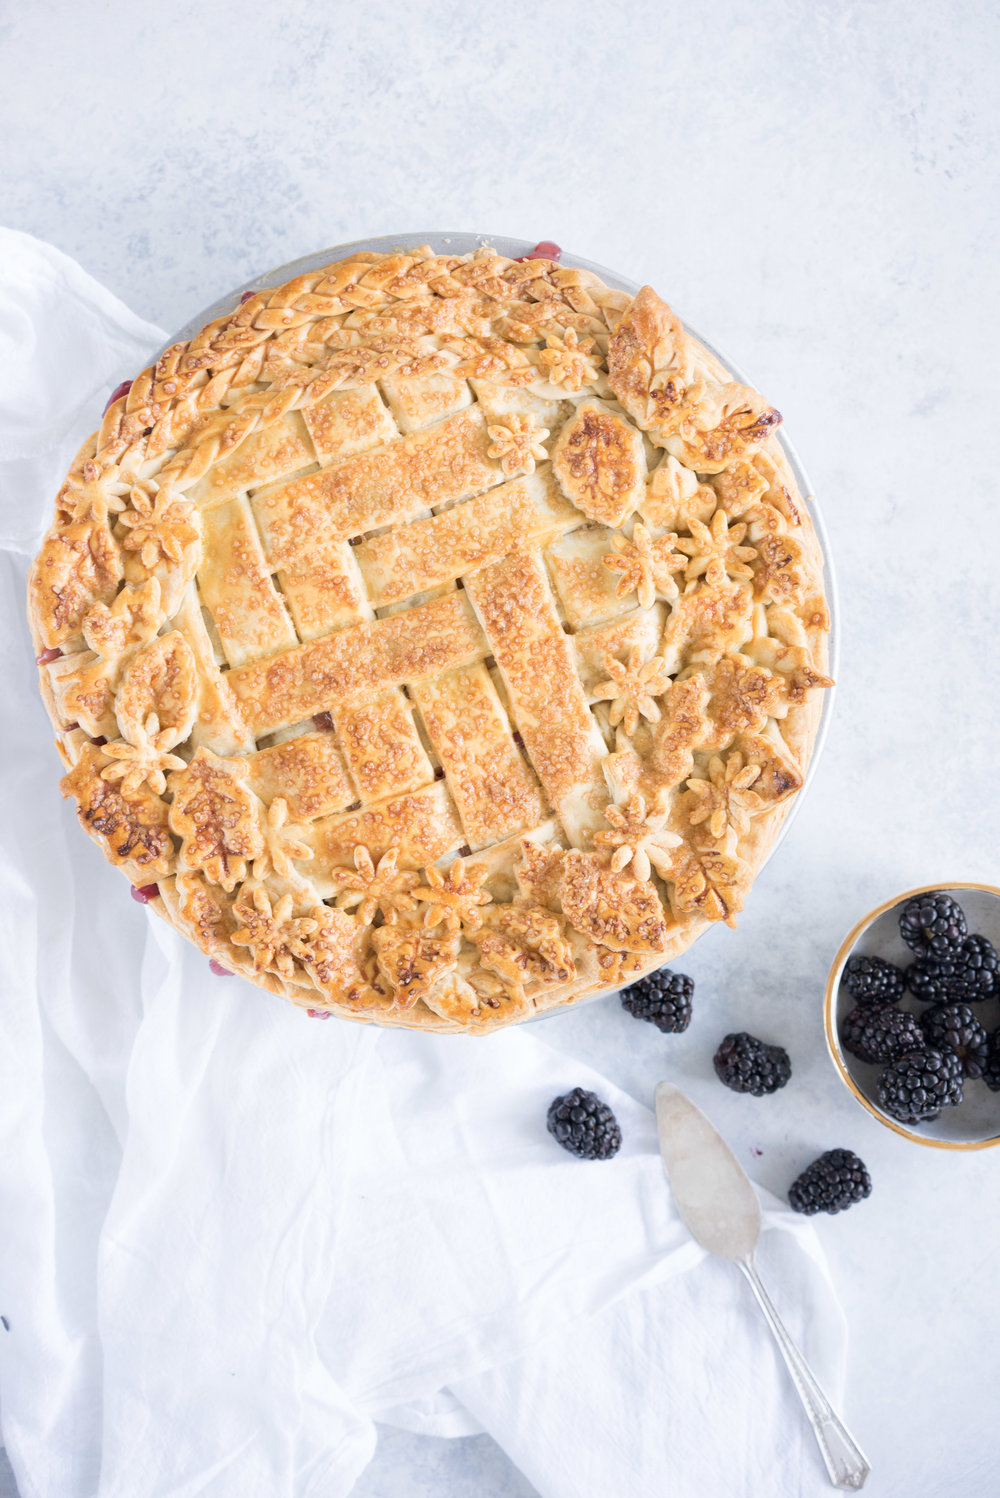 Apple and blackberry pie with herringbone lattice, braids, and pie stamps